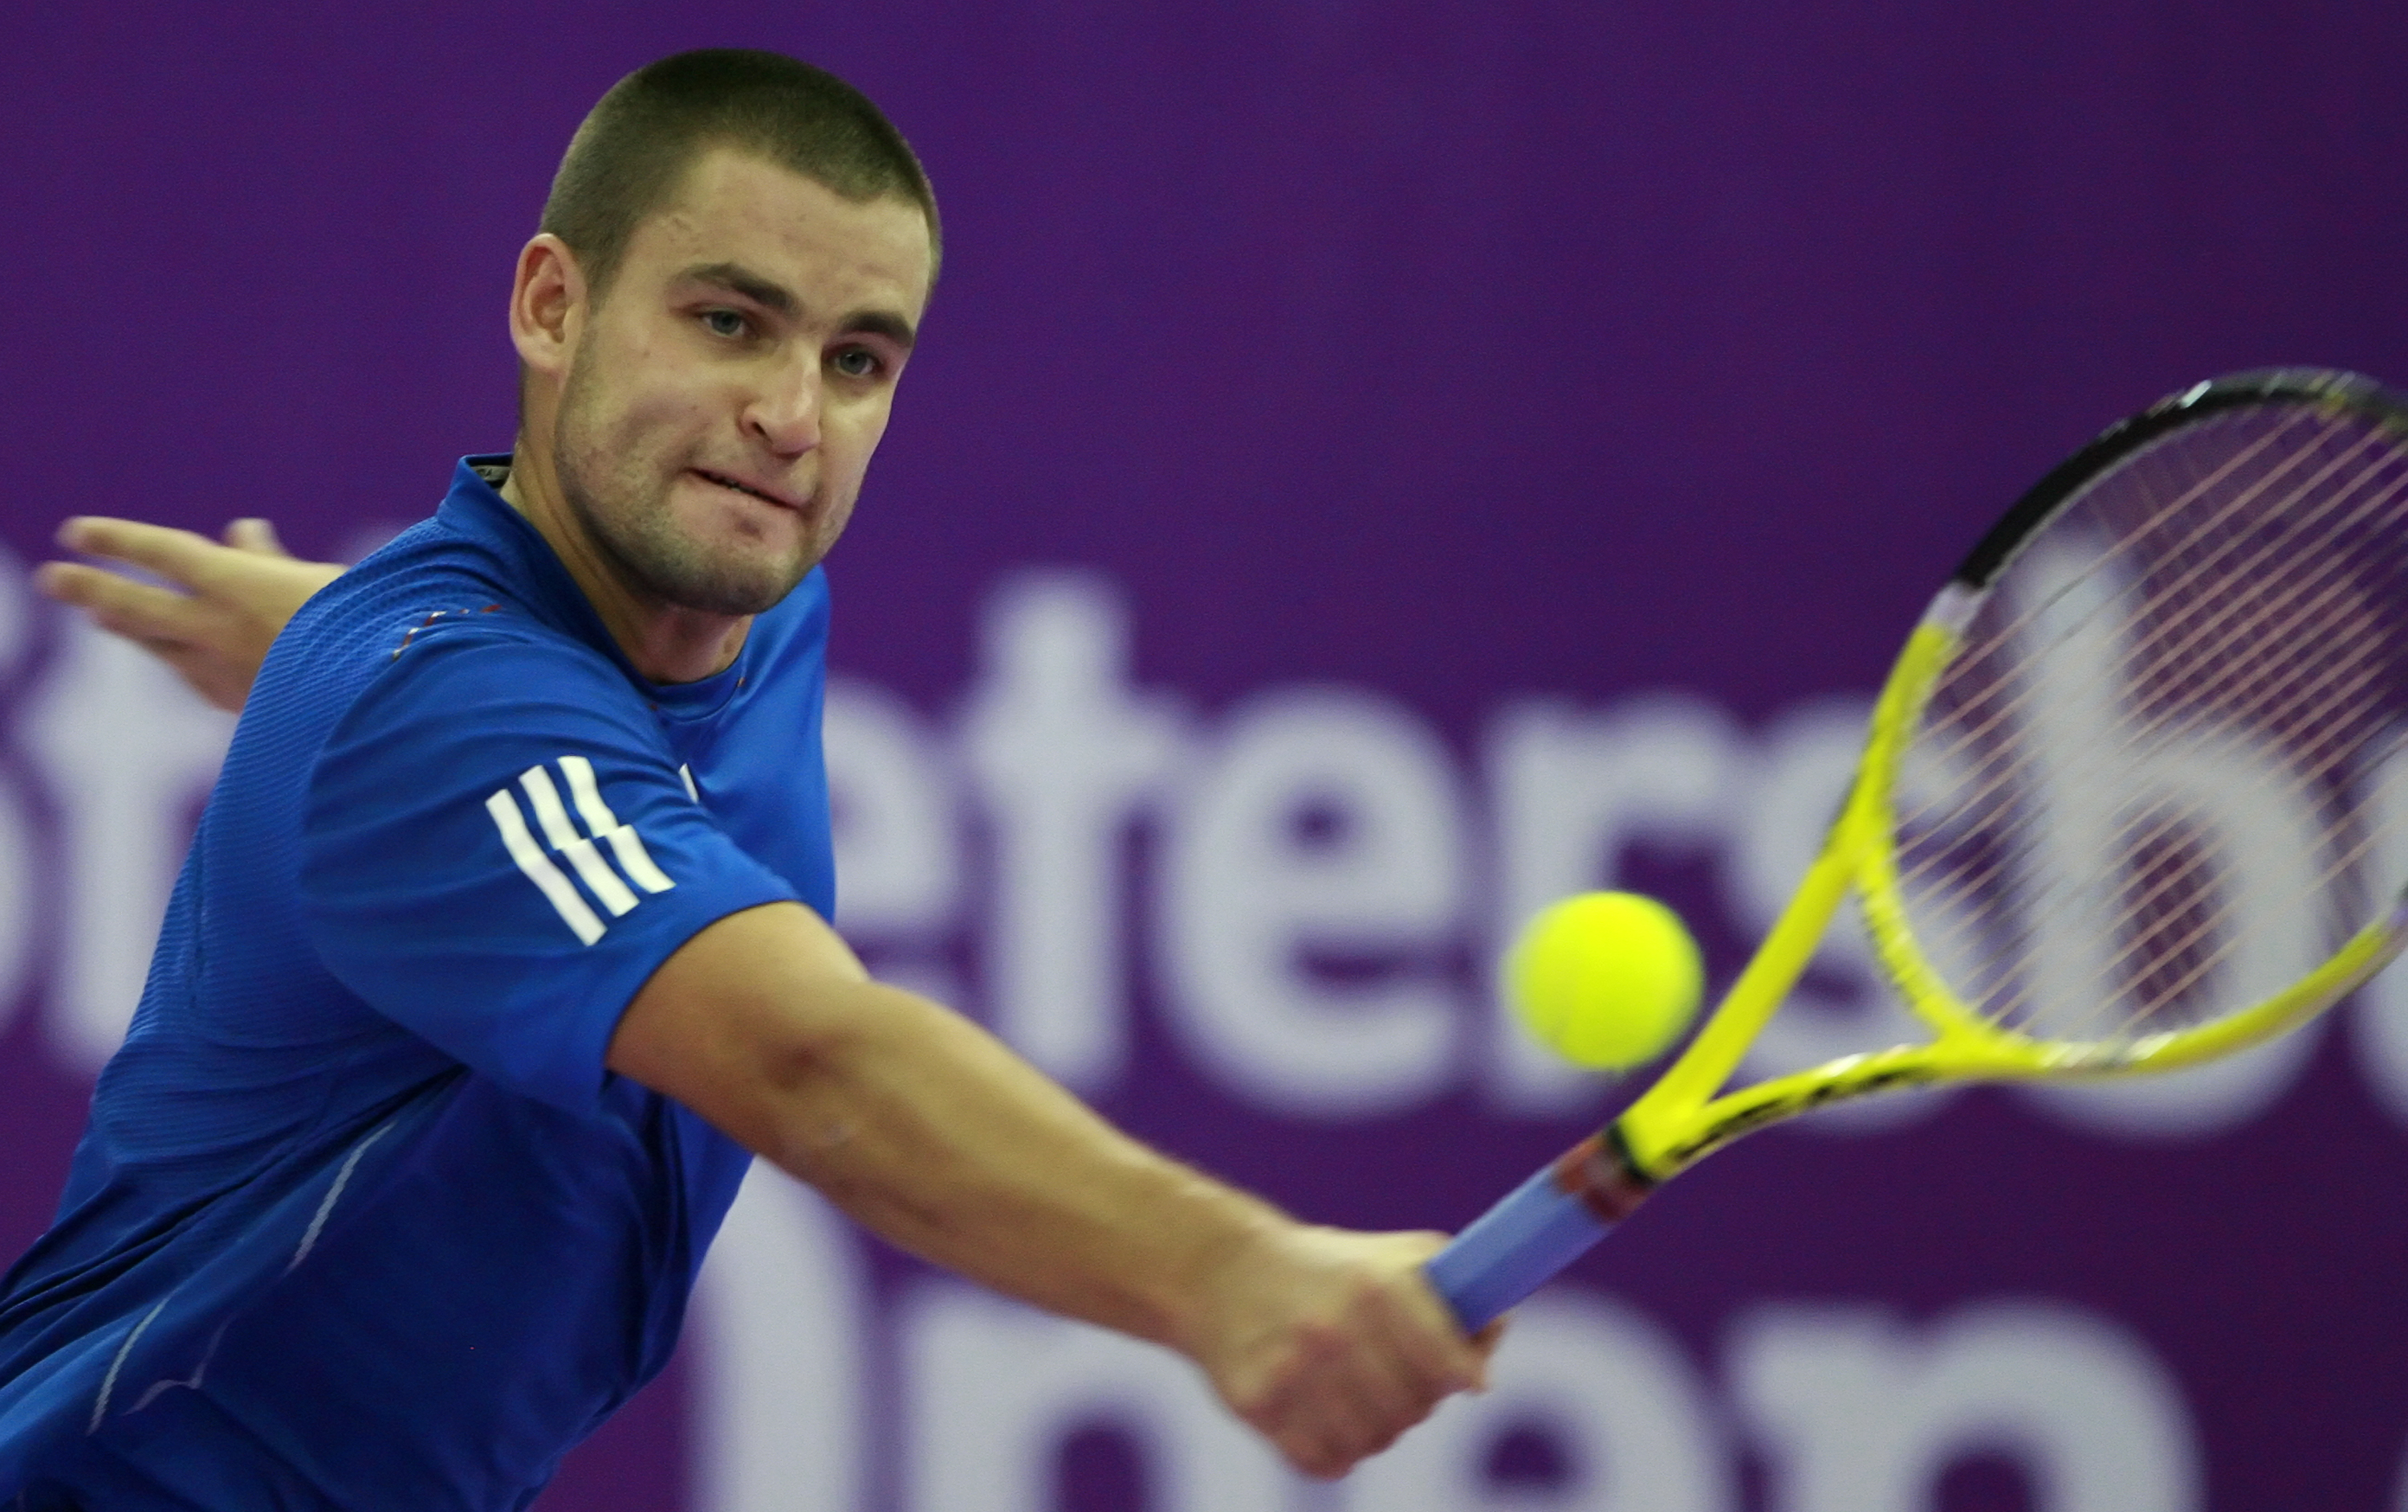 ST. PETERSBURG, RUSSIA - OCTOBER 31: Mikhail Youzhny of Russia plays against Mikhail Kukushkin of Kazakhstan during the singles final of the International Tennis Tournamen St. Petersburg Open 2010 at the Petersburgsky Sports Complex on October 31, 2010 in